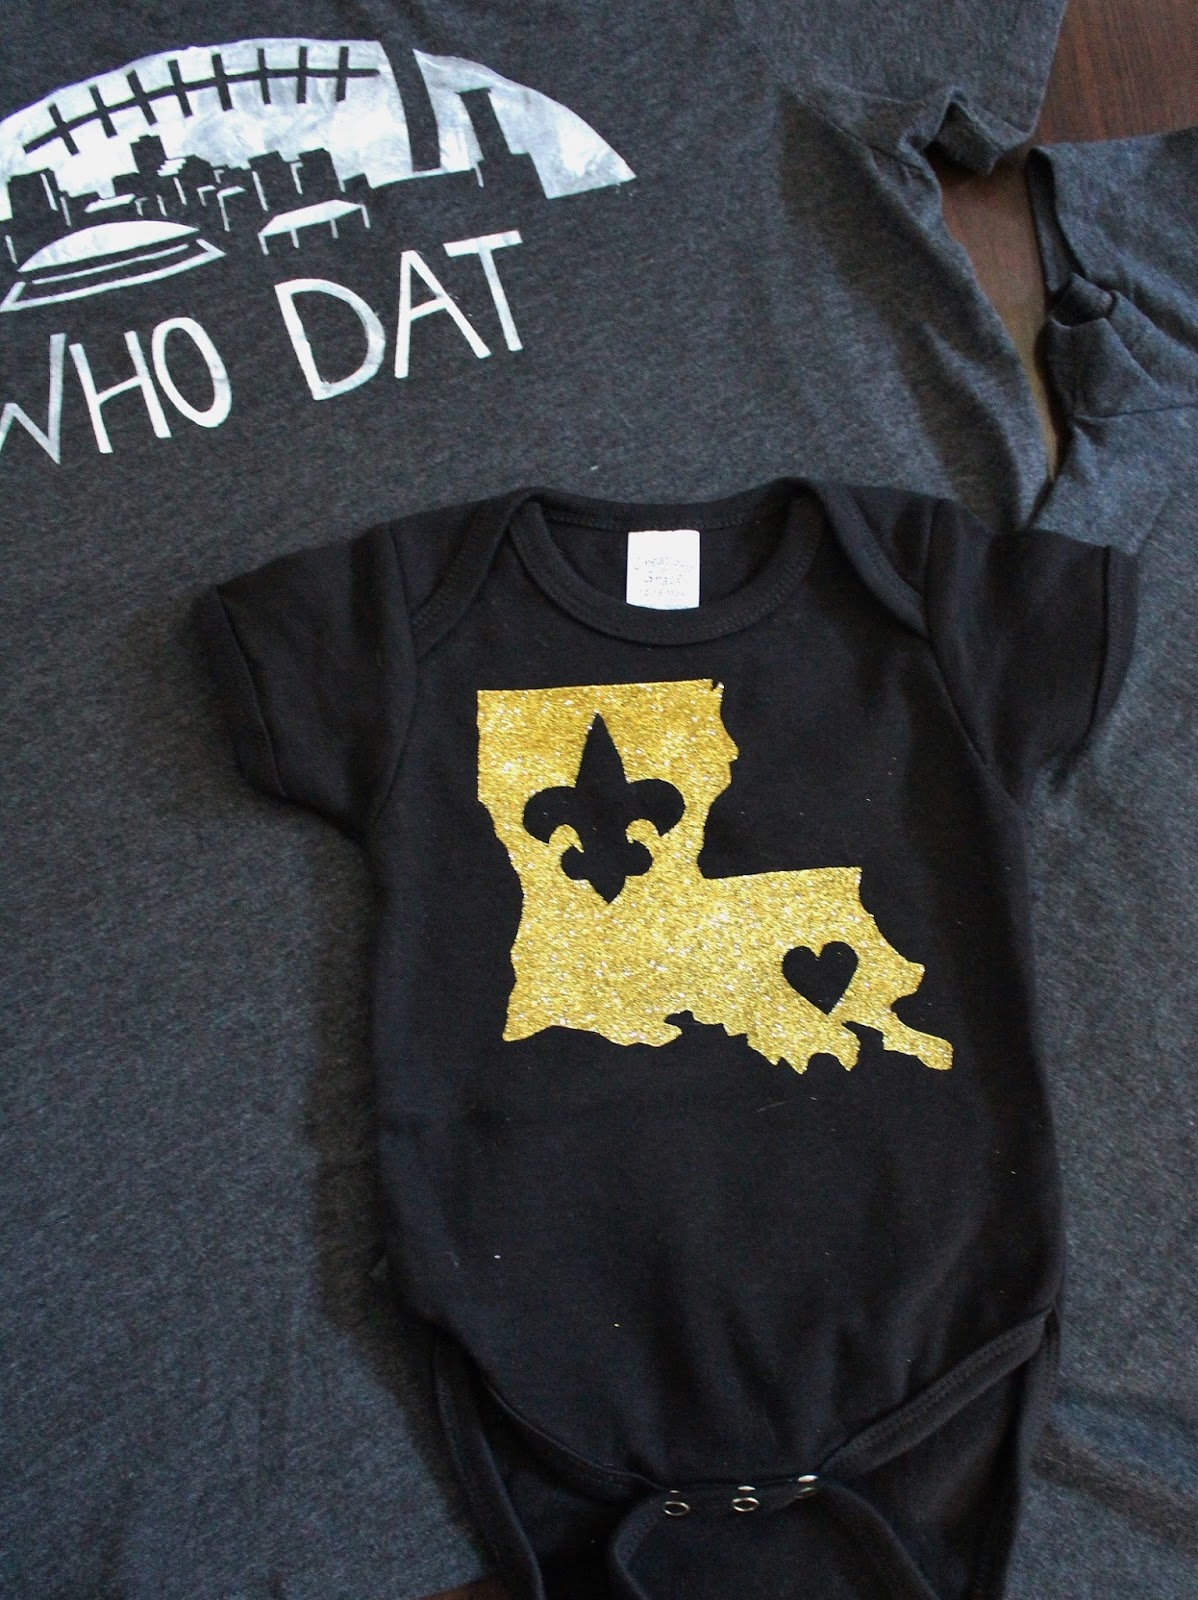 Nadia 39 s diy projects 3 diy new orleans saints t shirt designs for Shirt printing new orleans